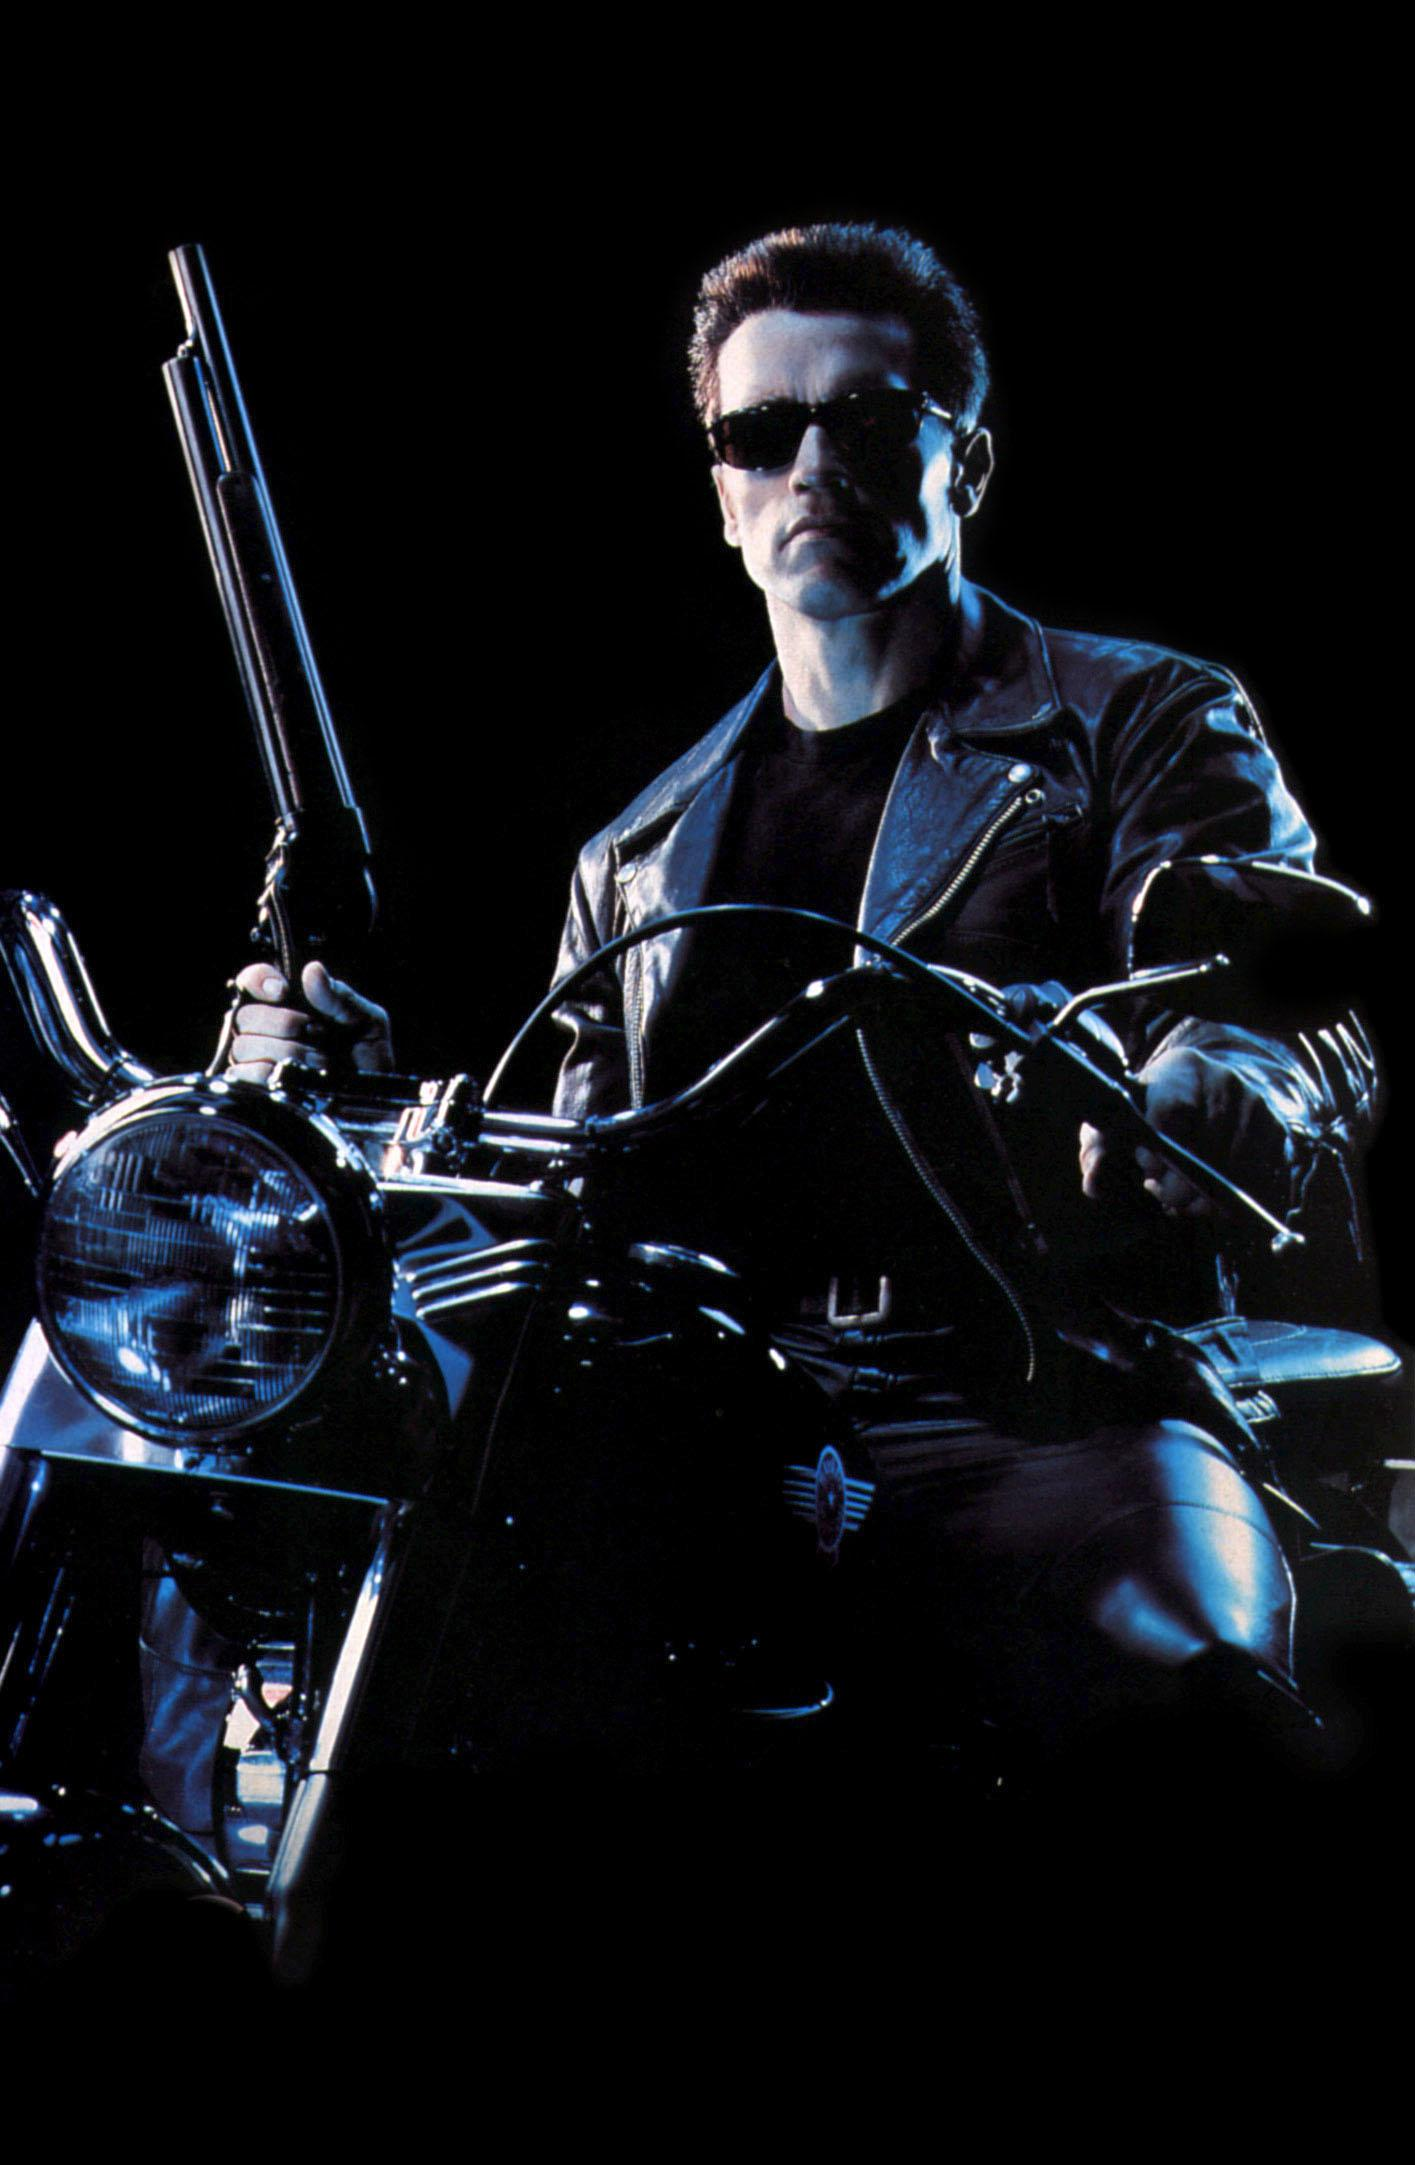 terminator-2-judgment-day-poster-publicity-one-sheet-photo-arnold-schwarzenegger-02